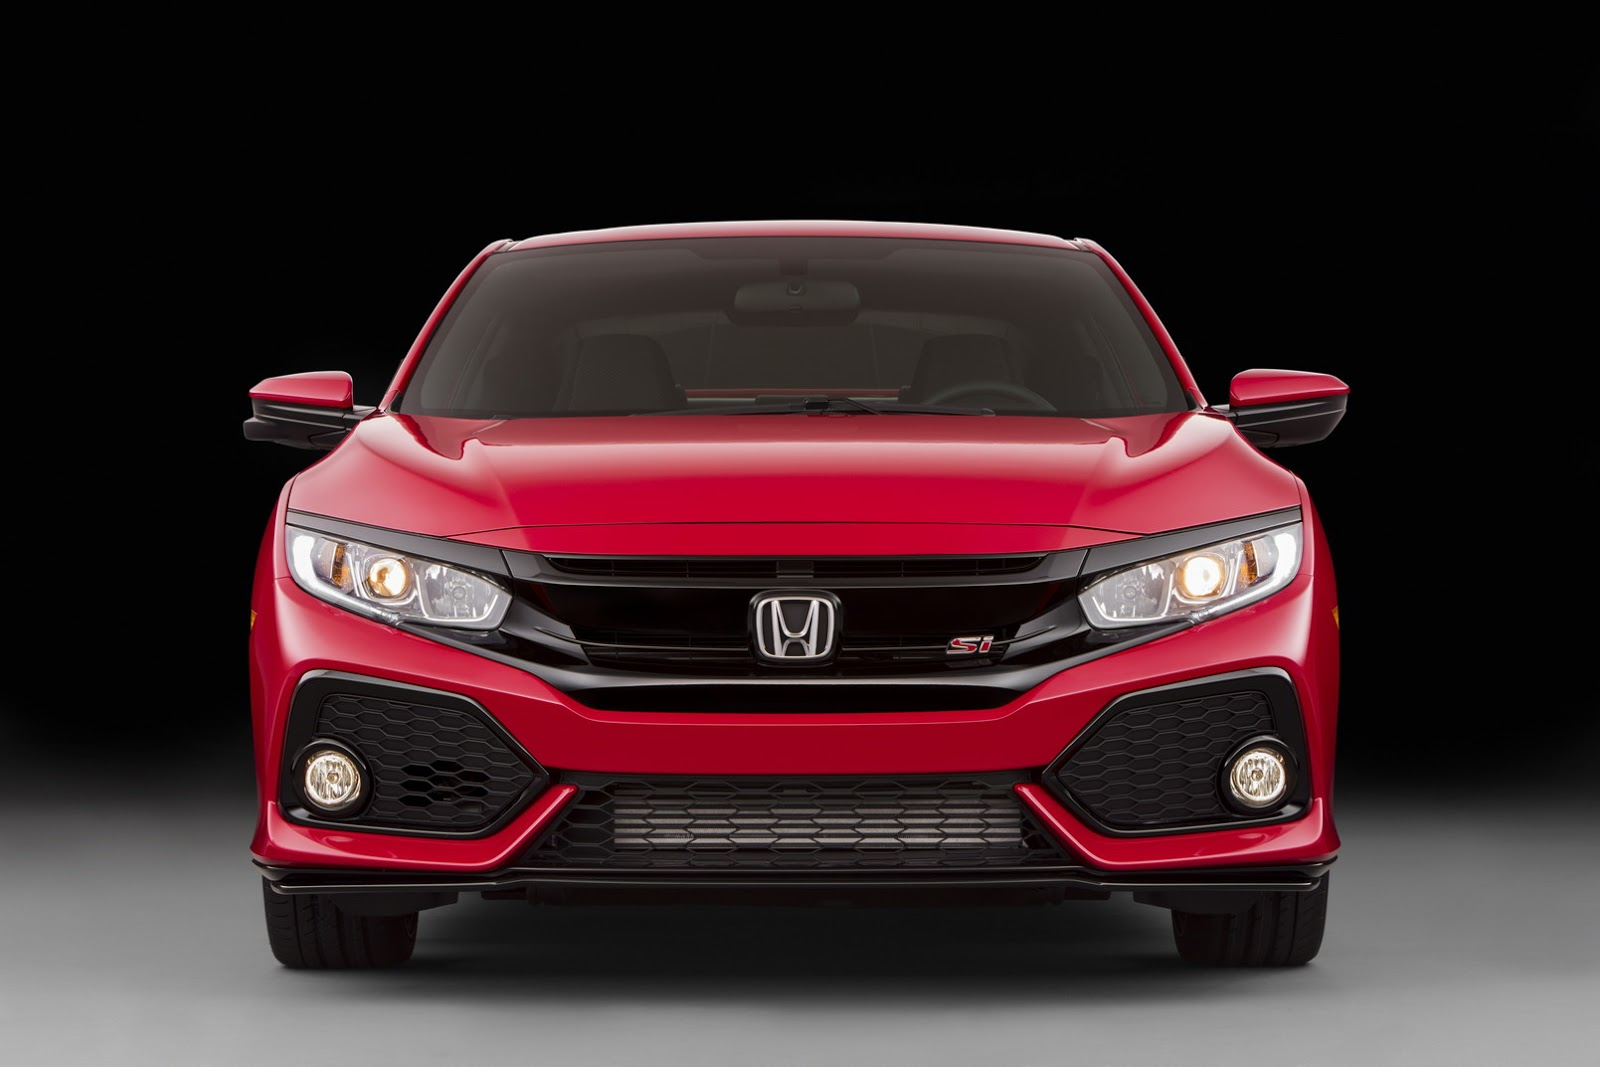 Honda Civic Si 2017 (11)